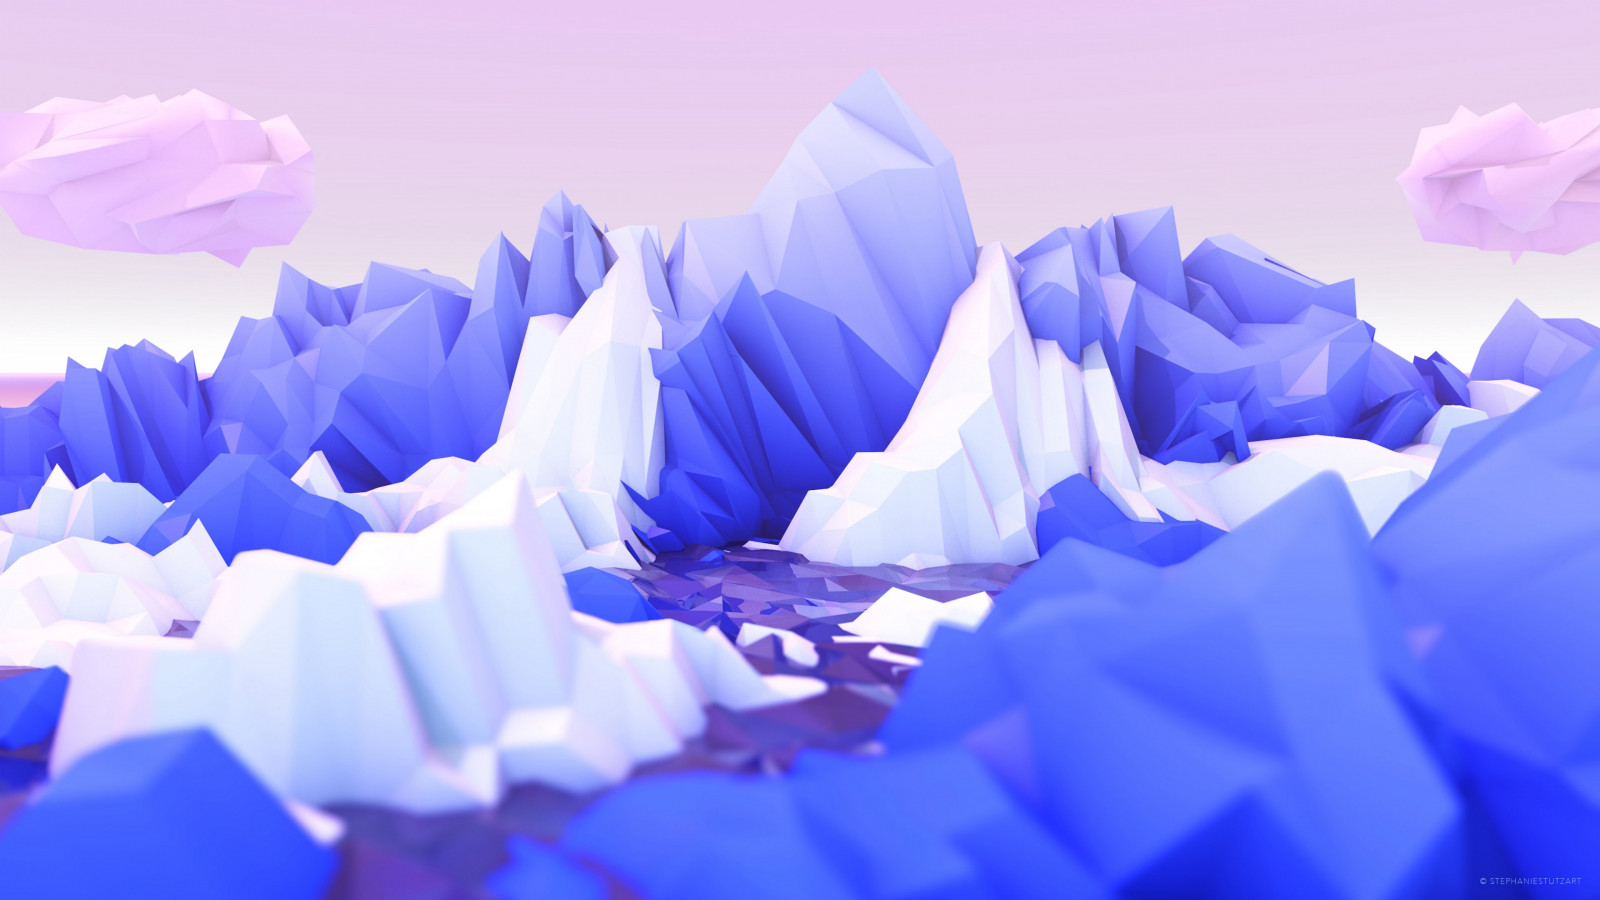 Low poly graphic design wallpaper 1600x900